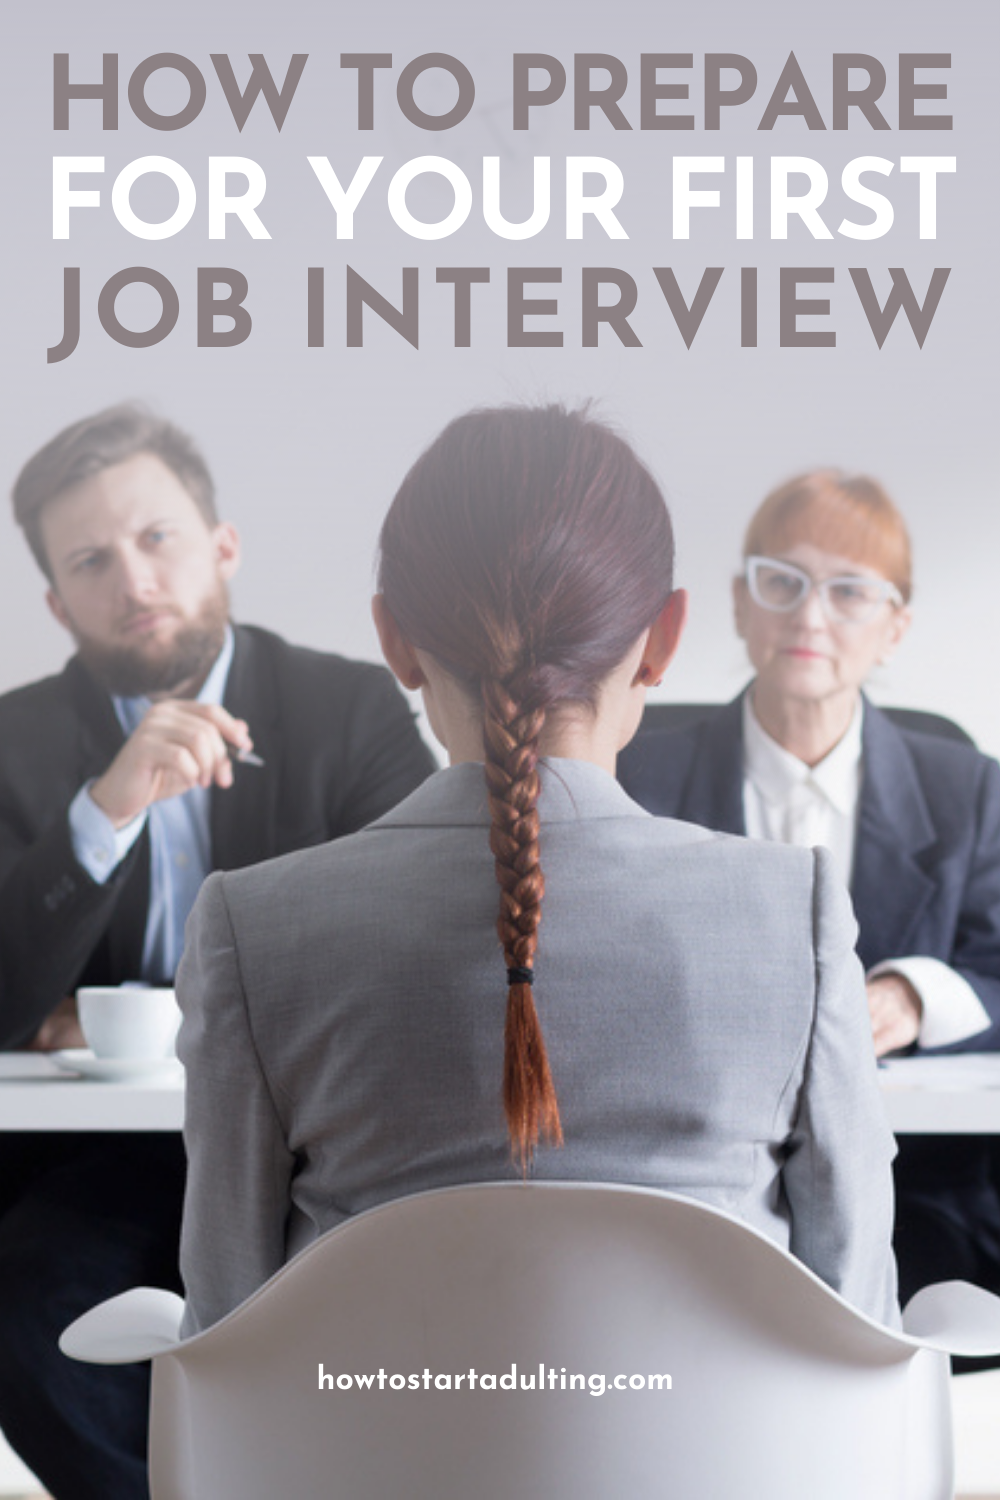 How To Successfully Prepare For Your First Job Interview As A Teenager, first job interview tips